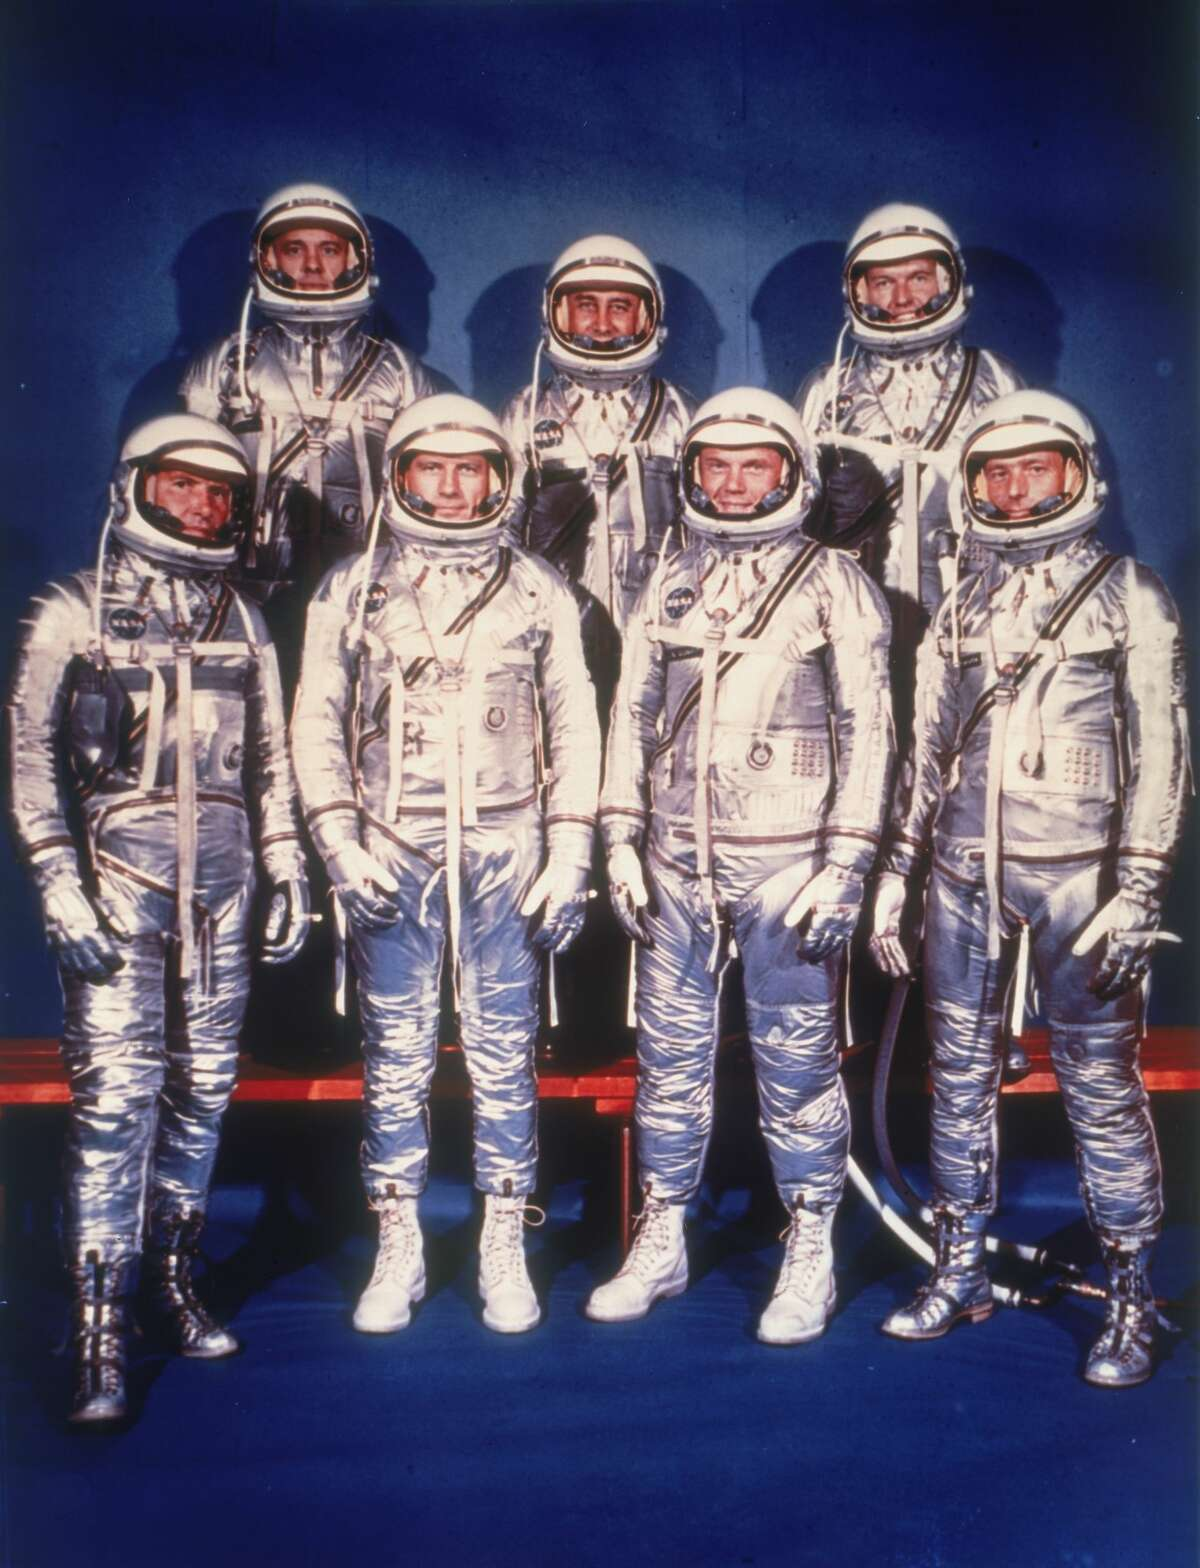 Mercury space suit Years active: 1959 through early 1970s